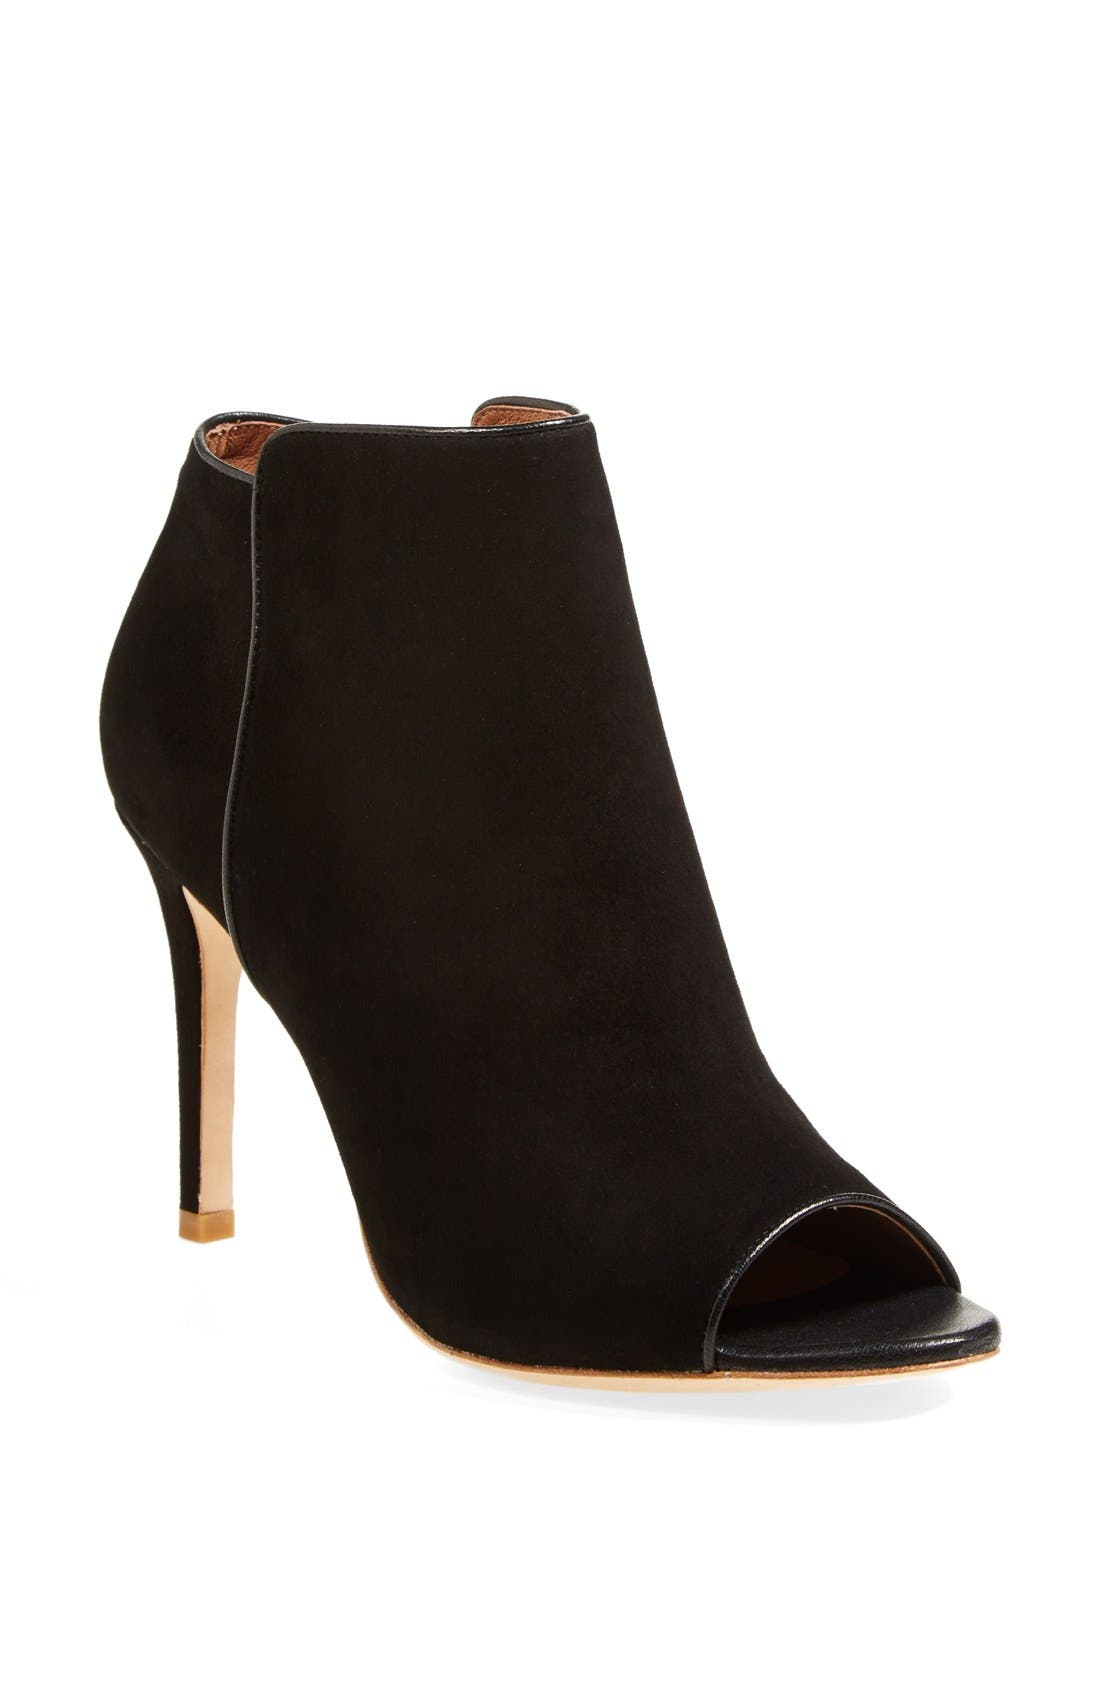 Alternate Image 1 Selected - Joie 'Gwen' Open Toe Suede Bootie (Nordstrom Exclusive) (Women)